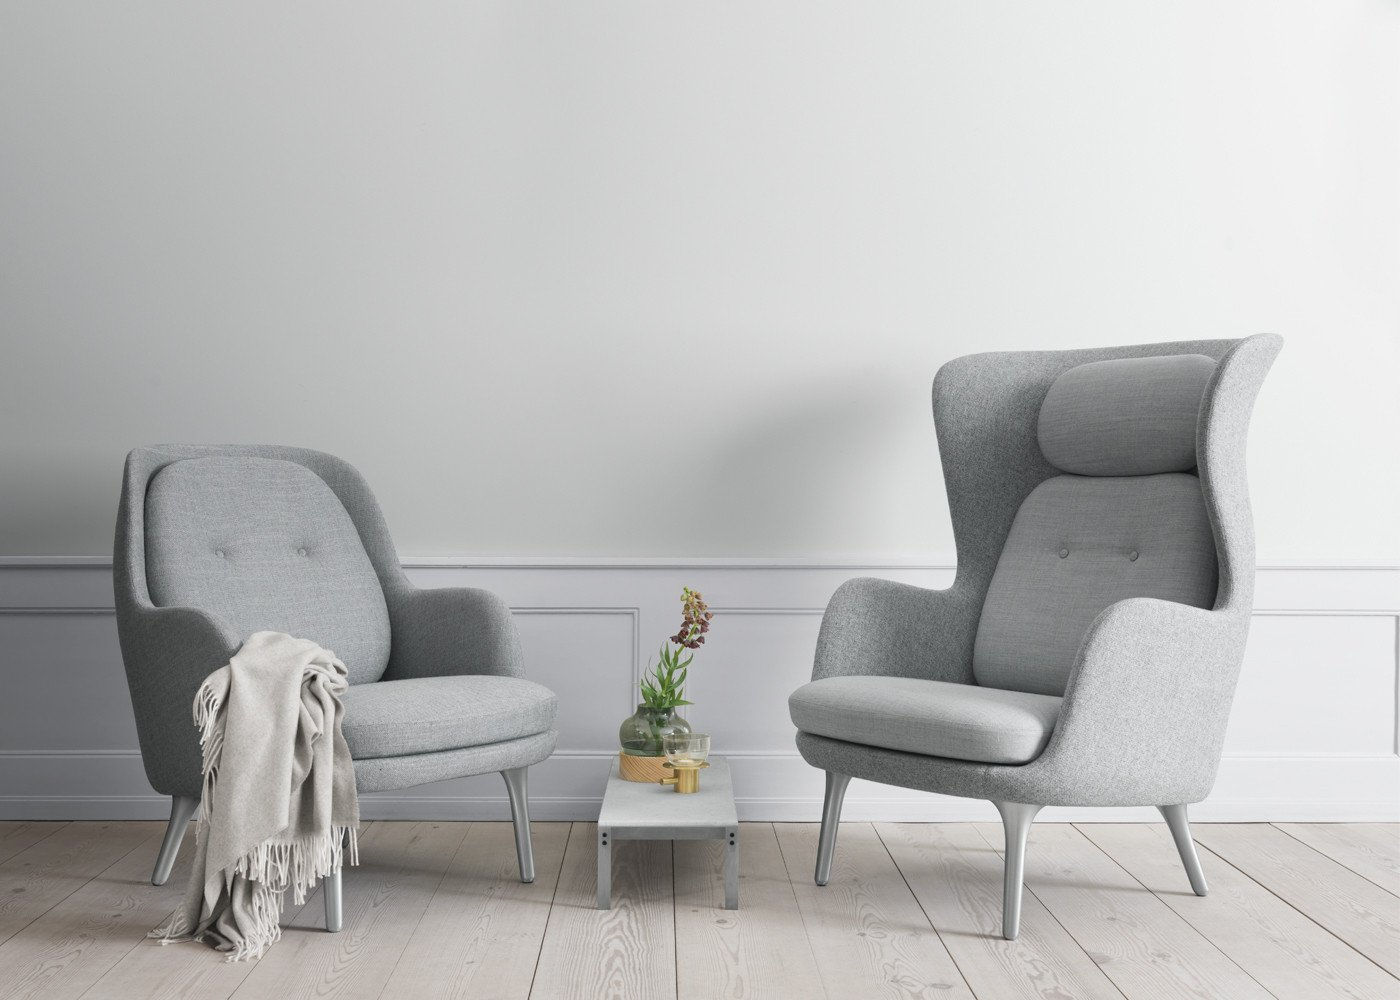 20 Modern Armchairs For A Bold And Timeless Design modern armchairs 20 Modern Armchairs For A Bold And Timeless Design 20 Modern Armchairs For A Bold And Timeless Design9